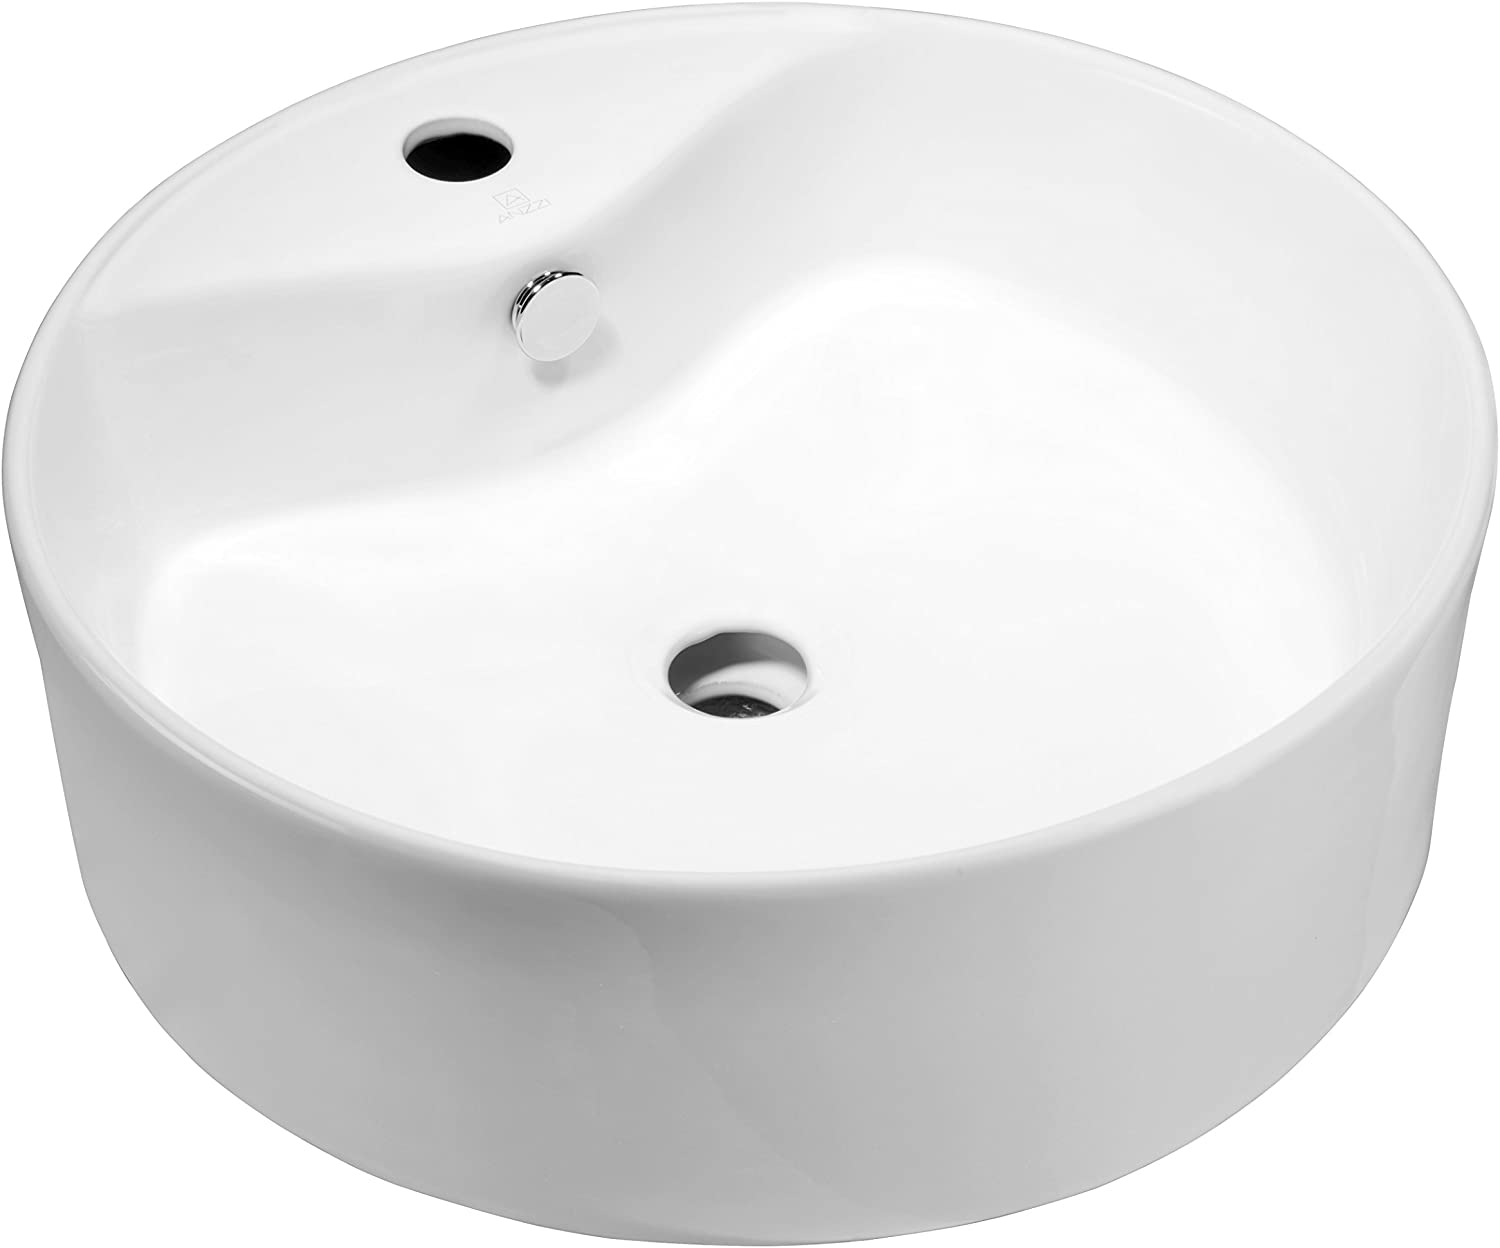 ANZZI Vitruvius Modern Polished White Ceramic Round Sink for Bathroom | 18 Inch Vitreous Vanity Sink Single Bowl for Lavatory | Top Mount Porcelain Bathroom Sink above Counter Top | LS-AZ129